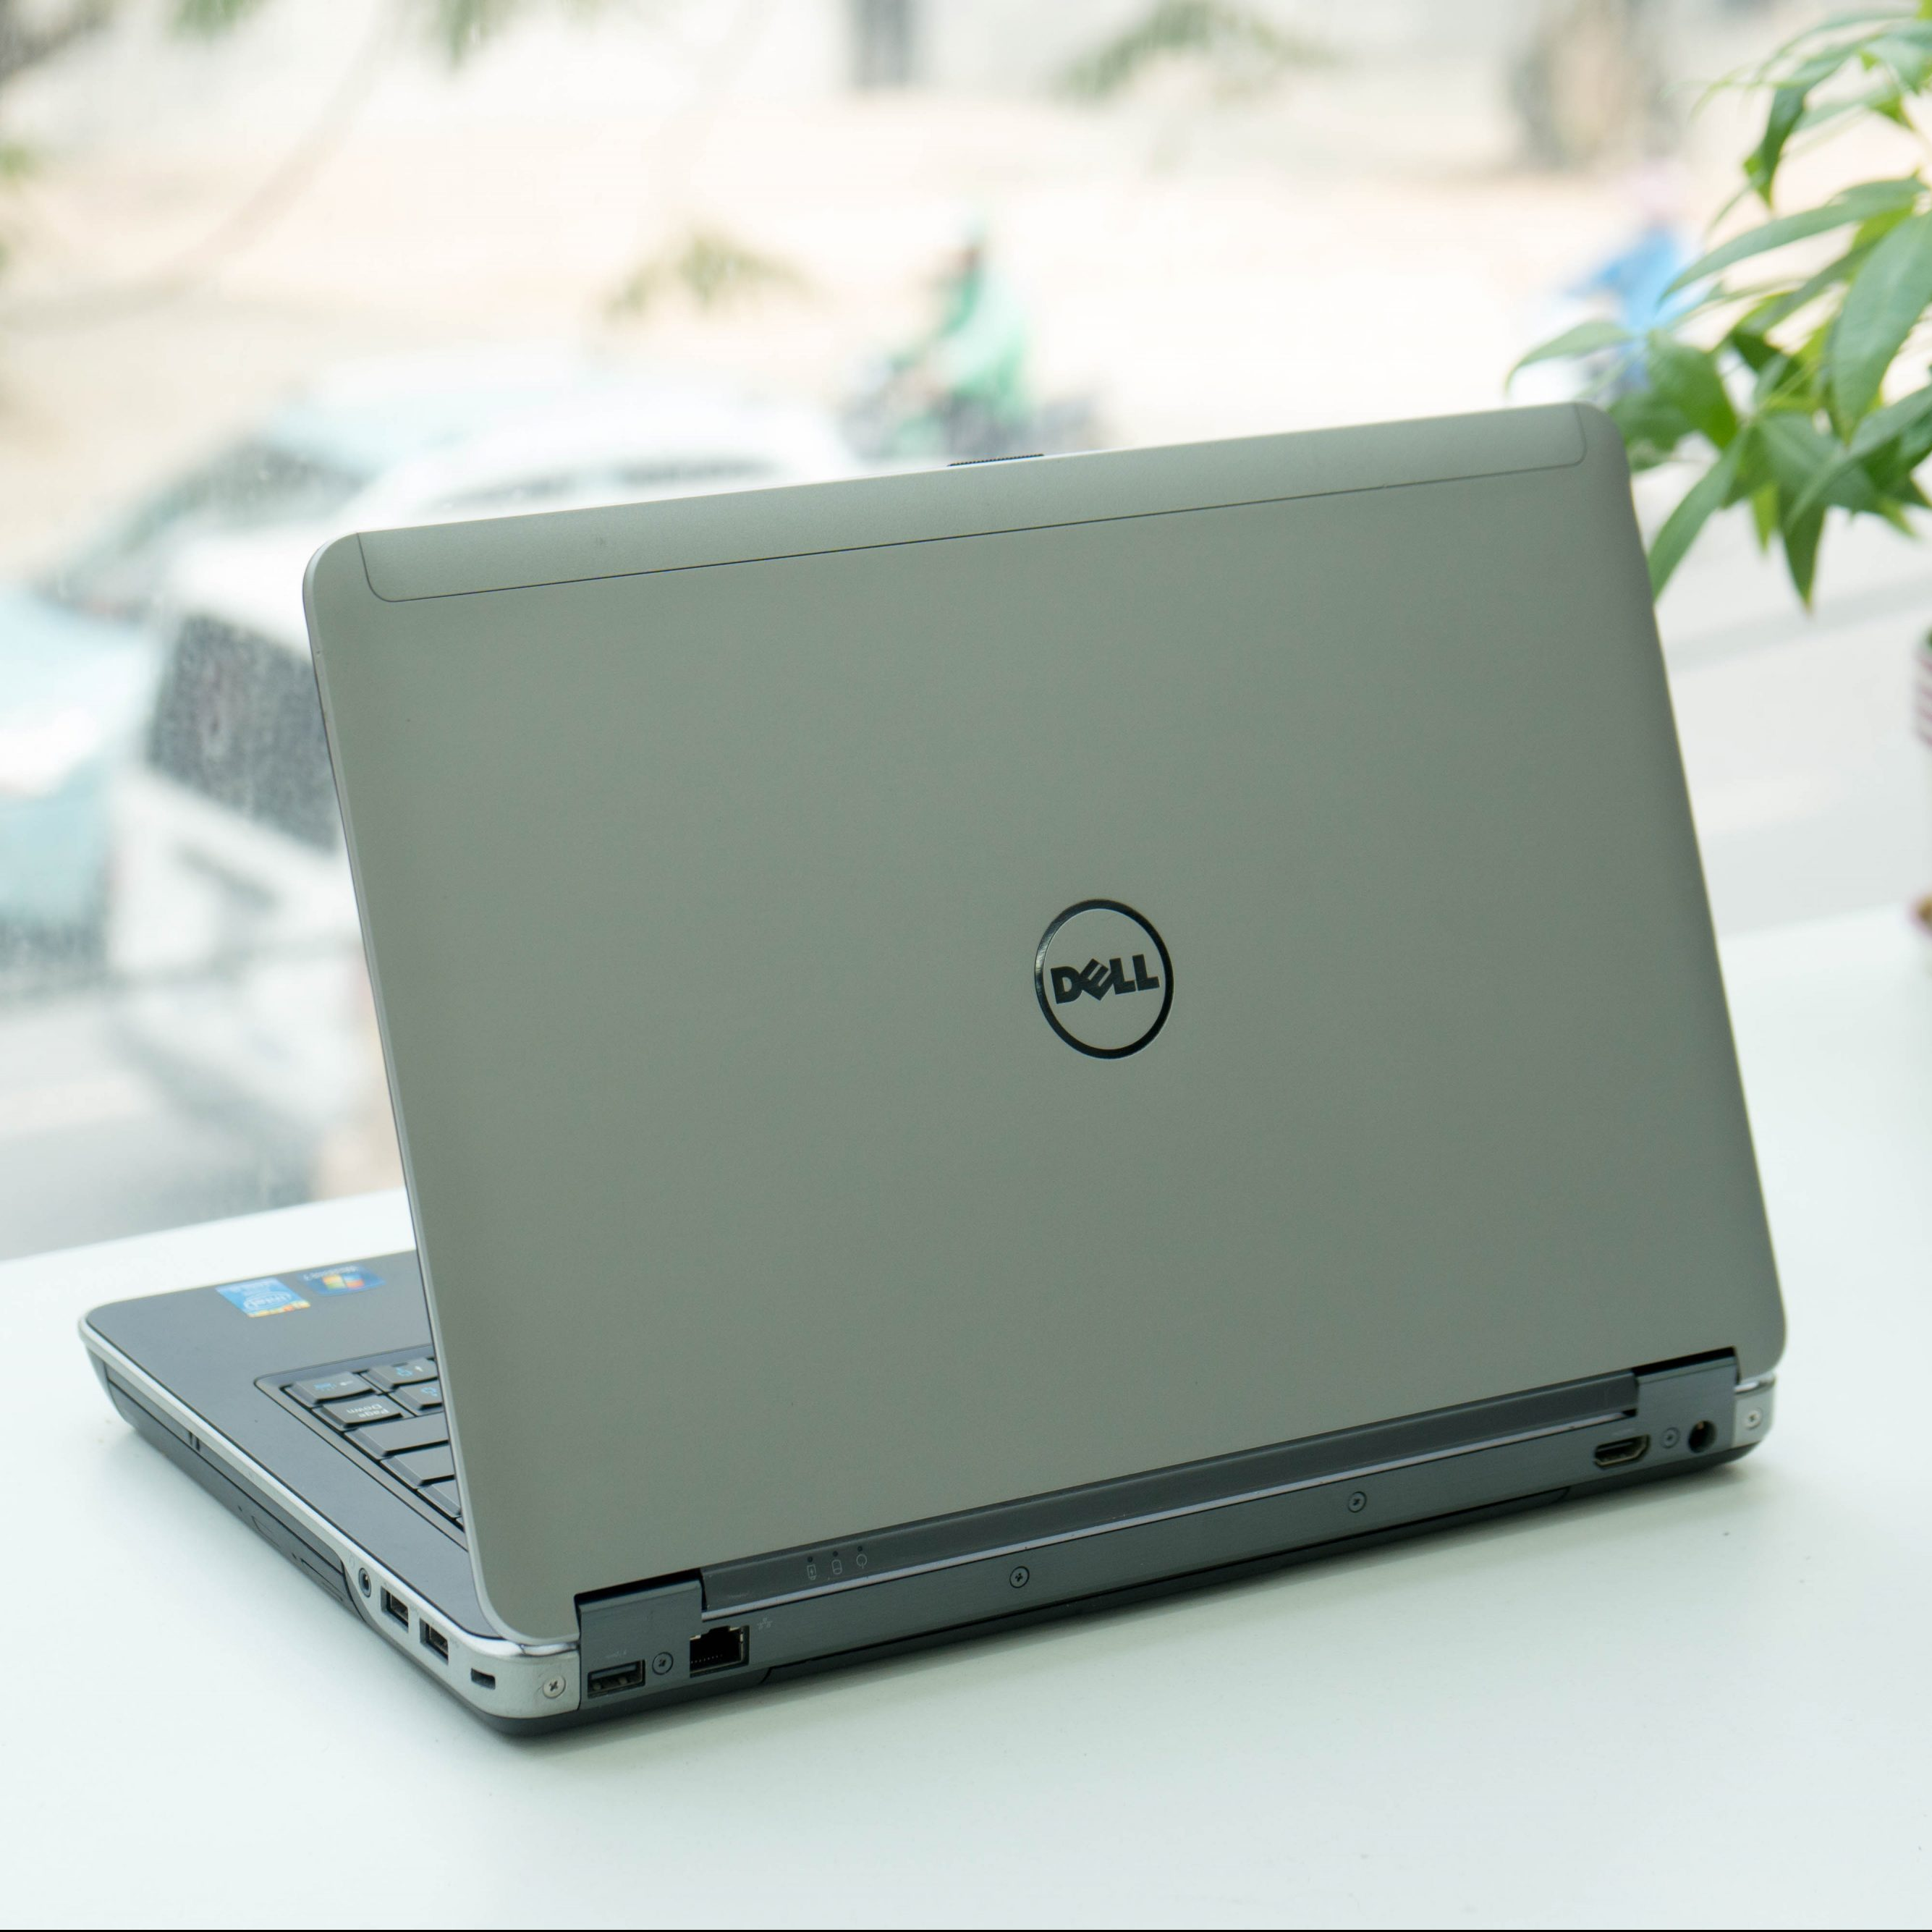 laptop tcc Dell Latitude E6440 (29)